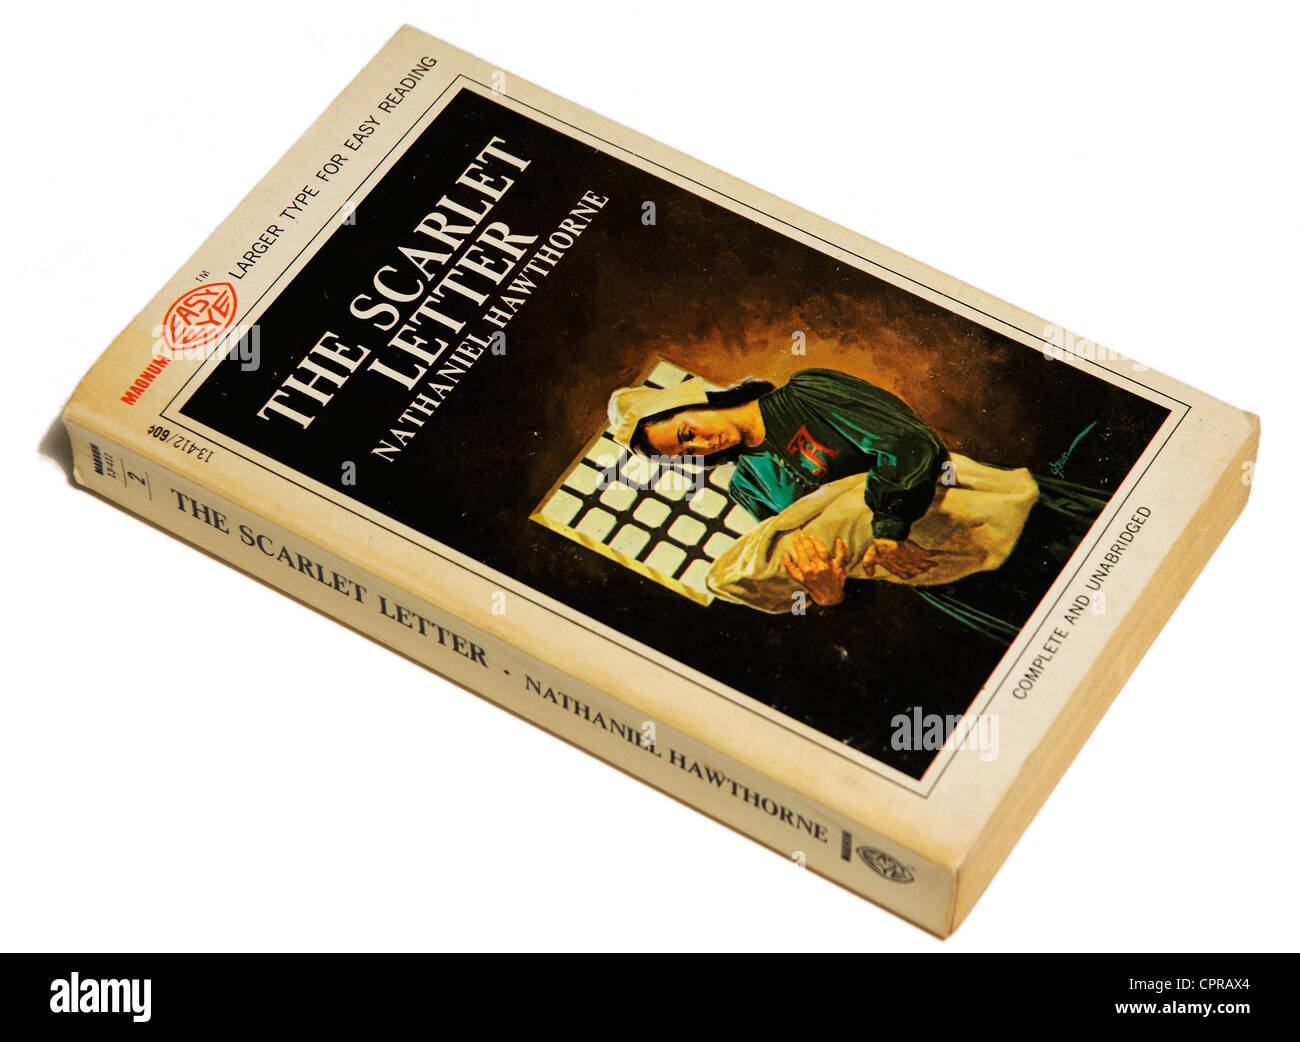 The Scarlet Letter by Nathaniel Hawthorne - Stock Image